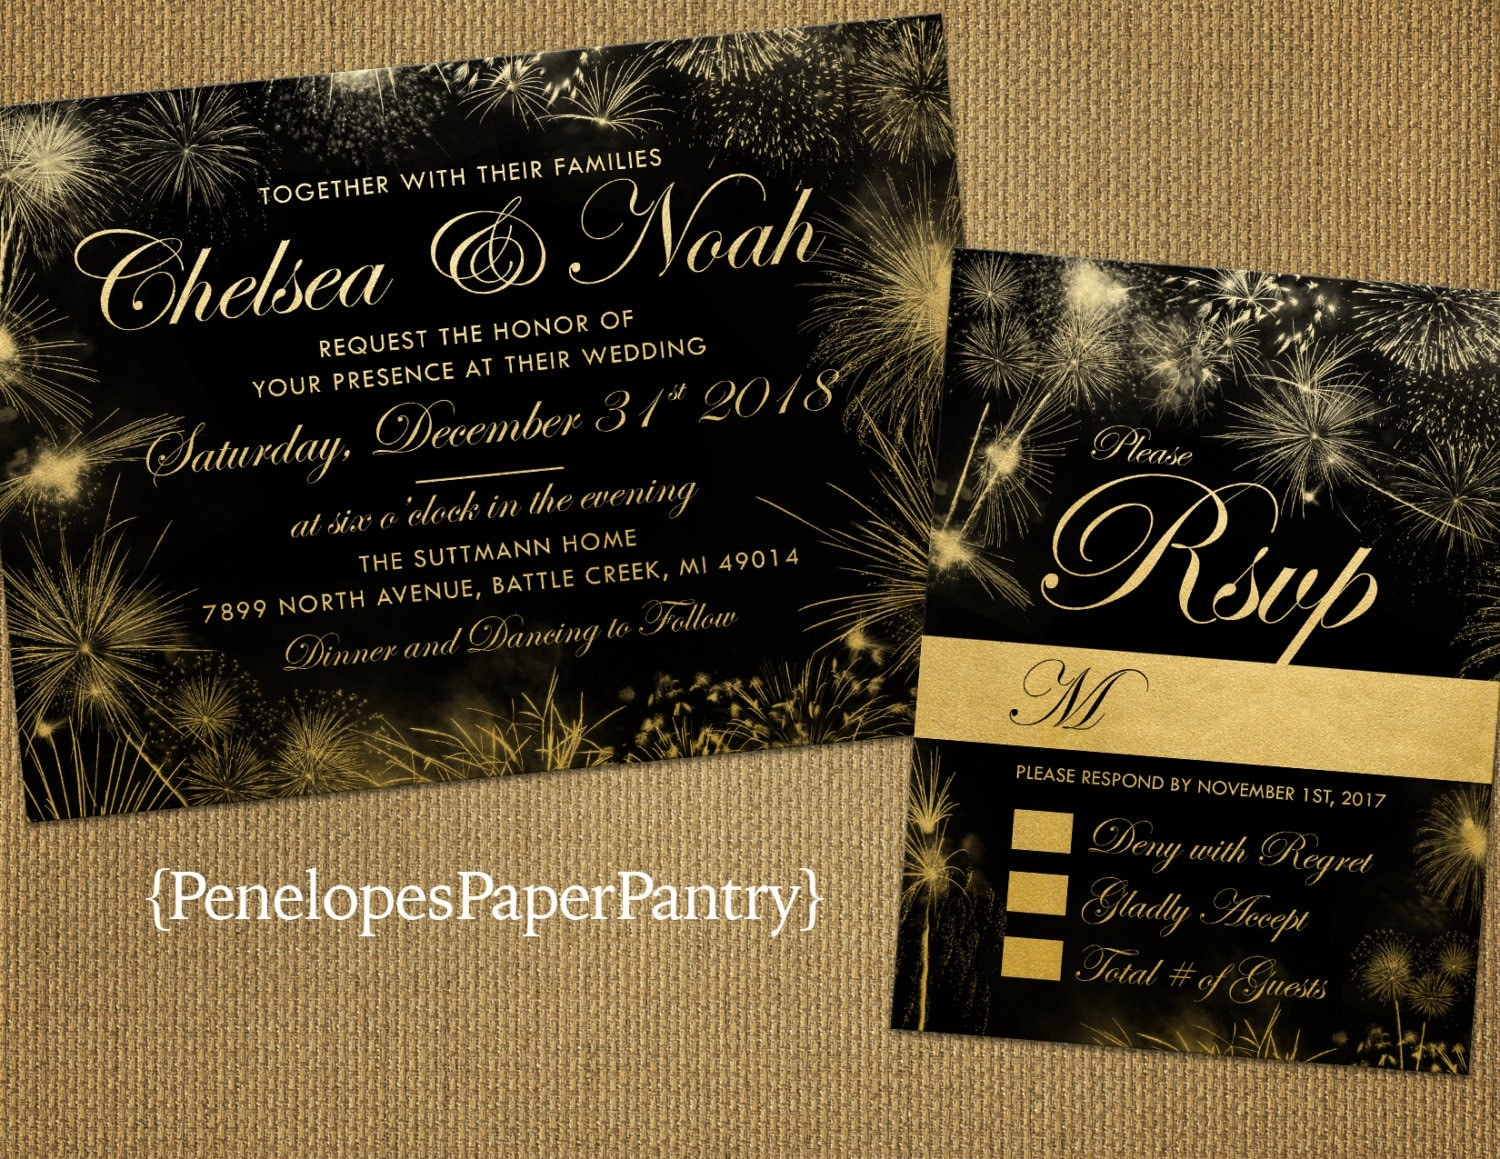 New Years Eve Wedding Invitation: New Year's Eve Wedding InvitationElegant Black And